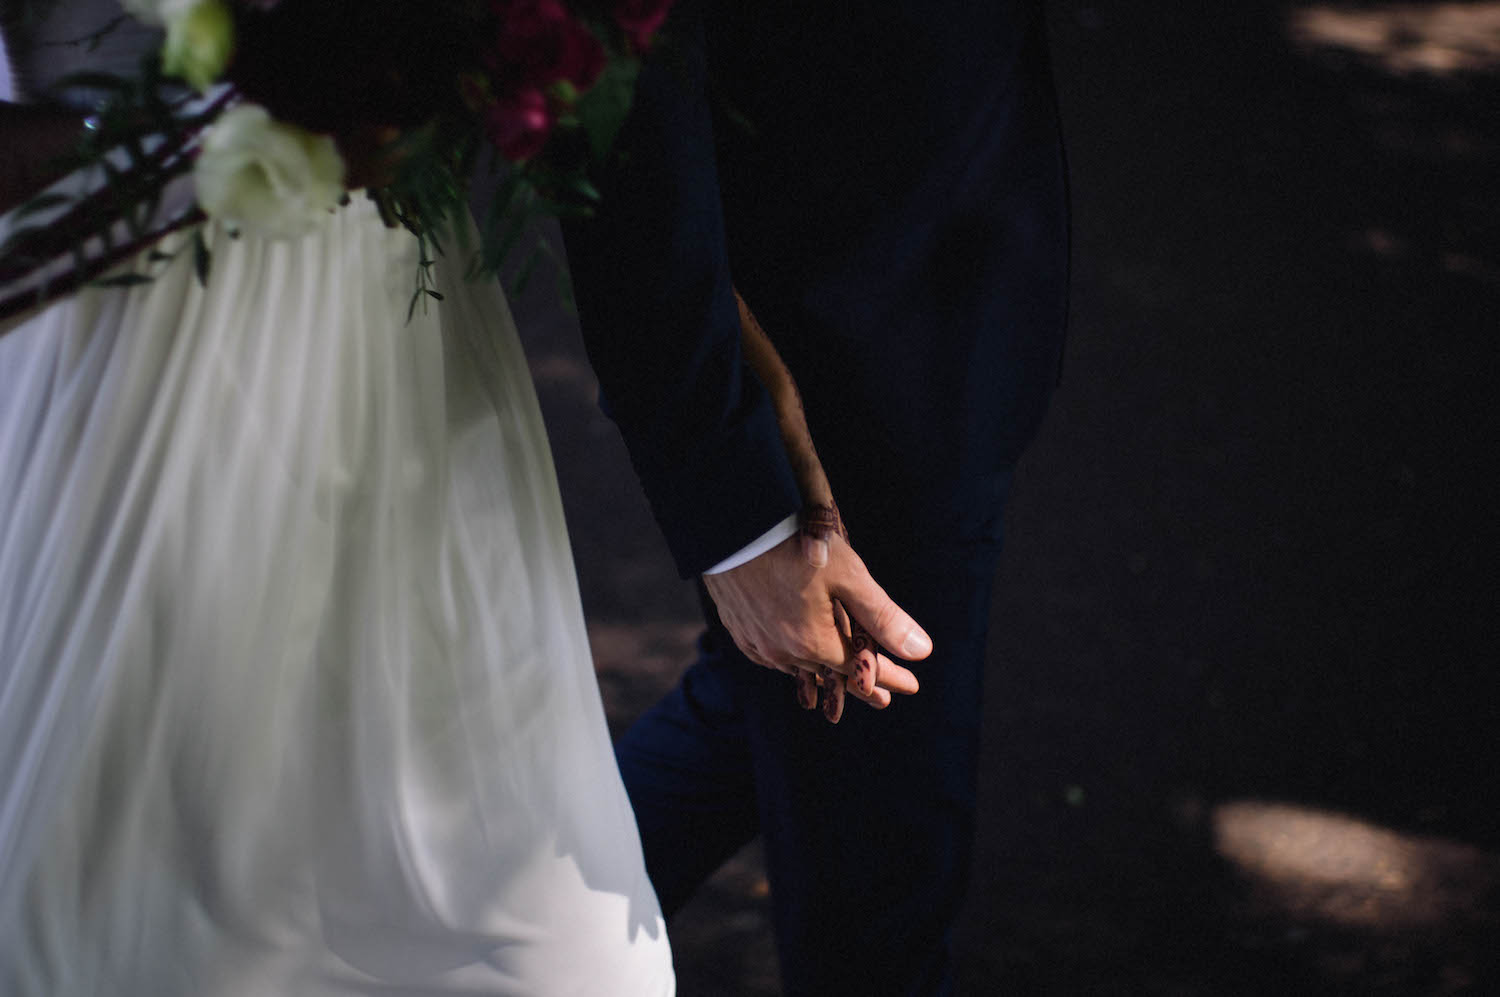 Take my hand, a wedding photo taken by Rhianna May Destination Wedding Photographer